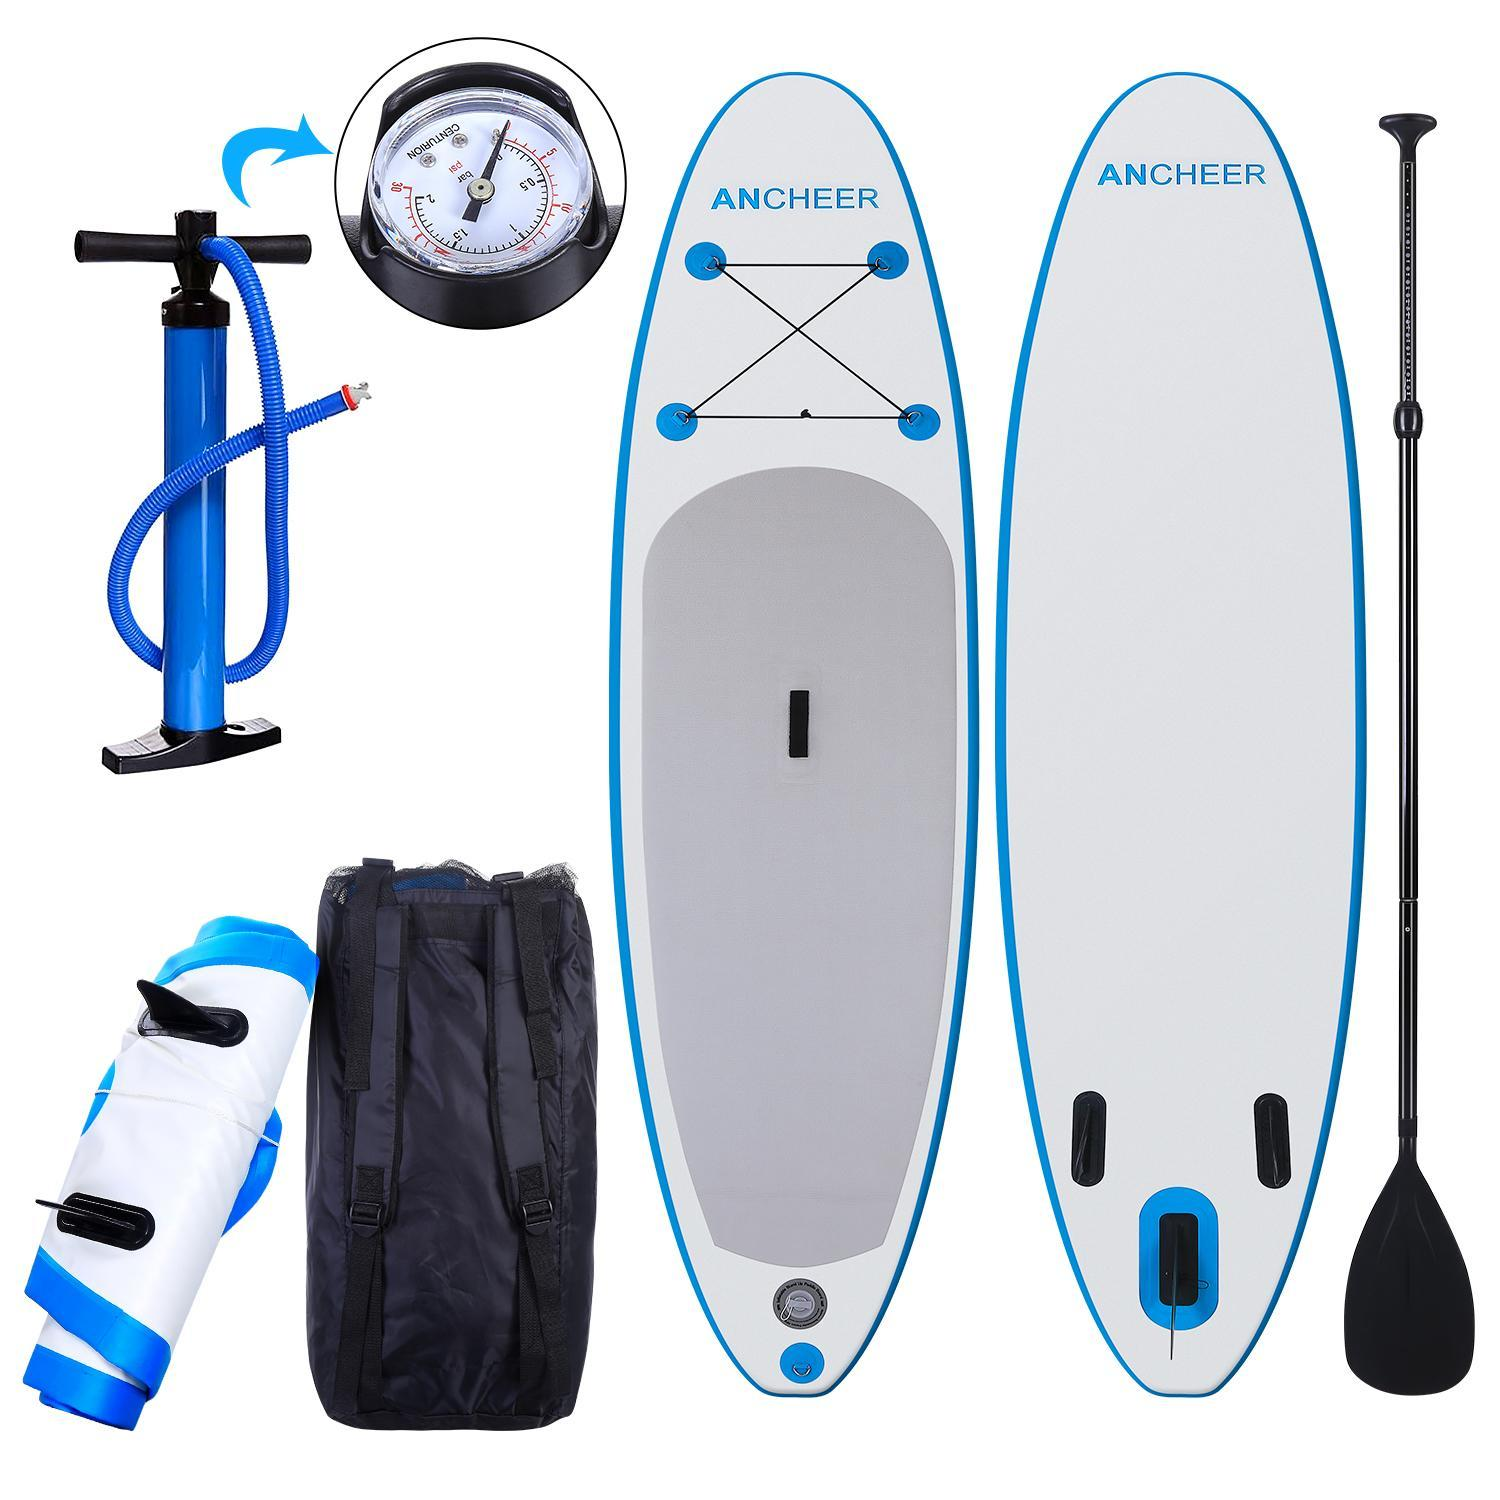 Studiostore Paddle Board All-purpose Adjustable Paddle Inflatable Single-layer Surf Board